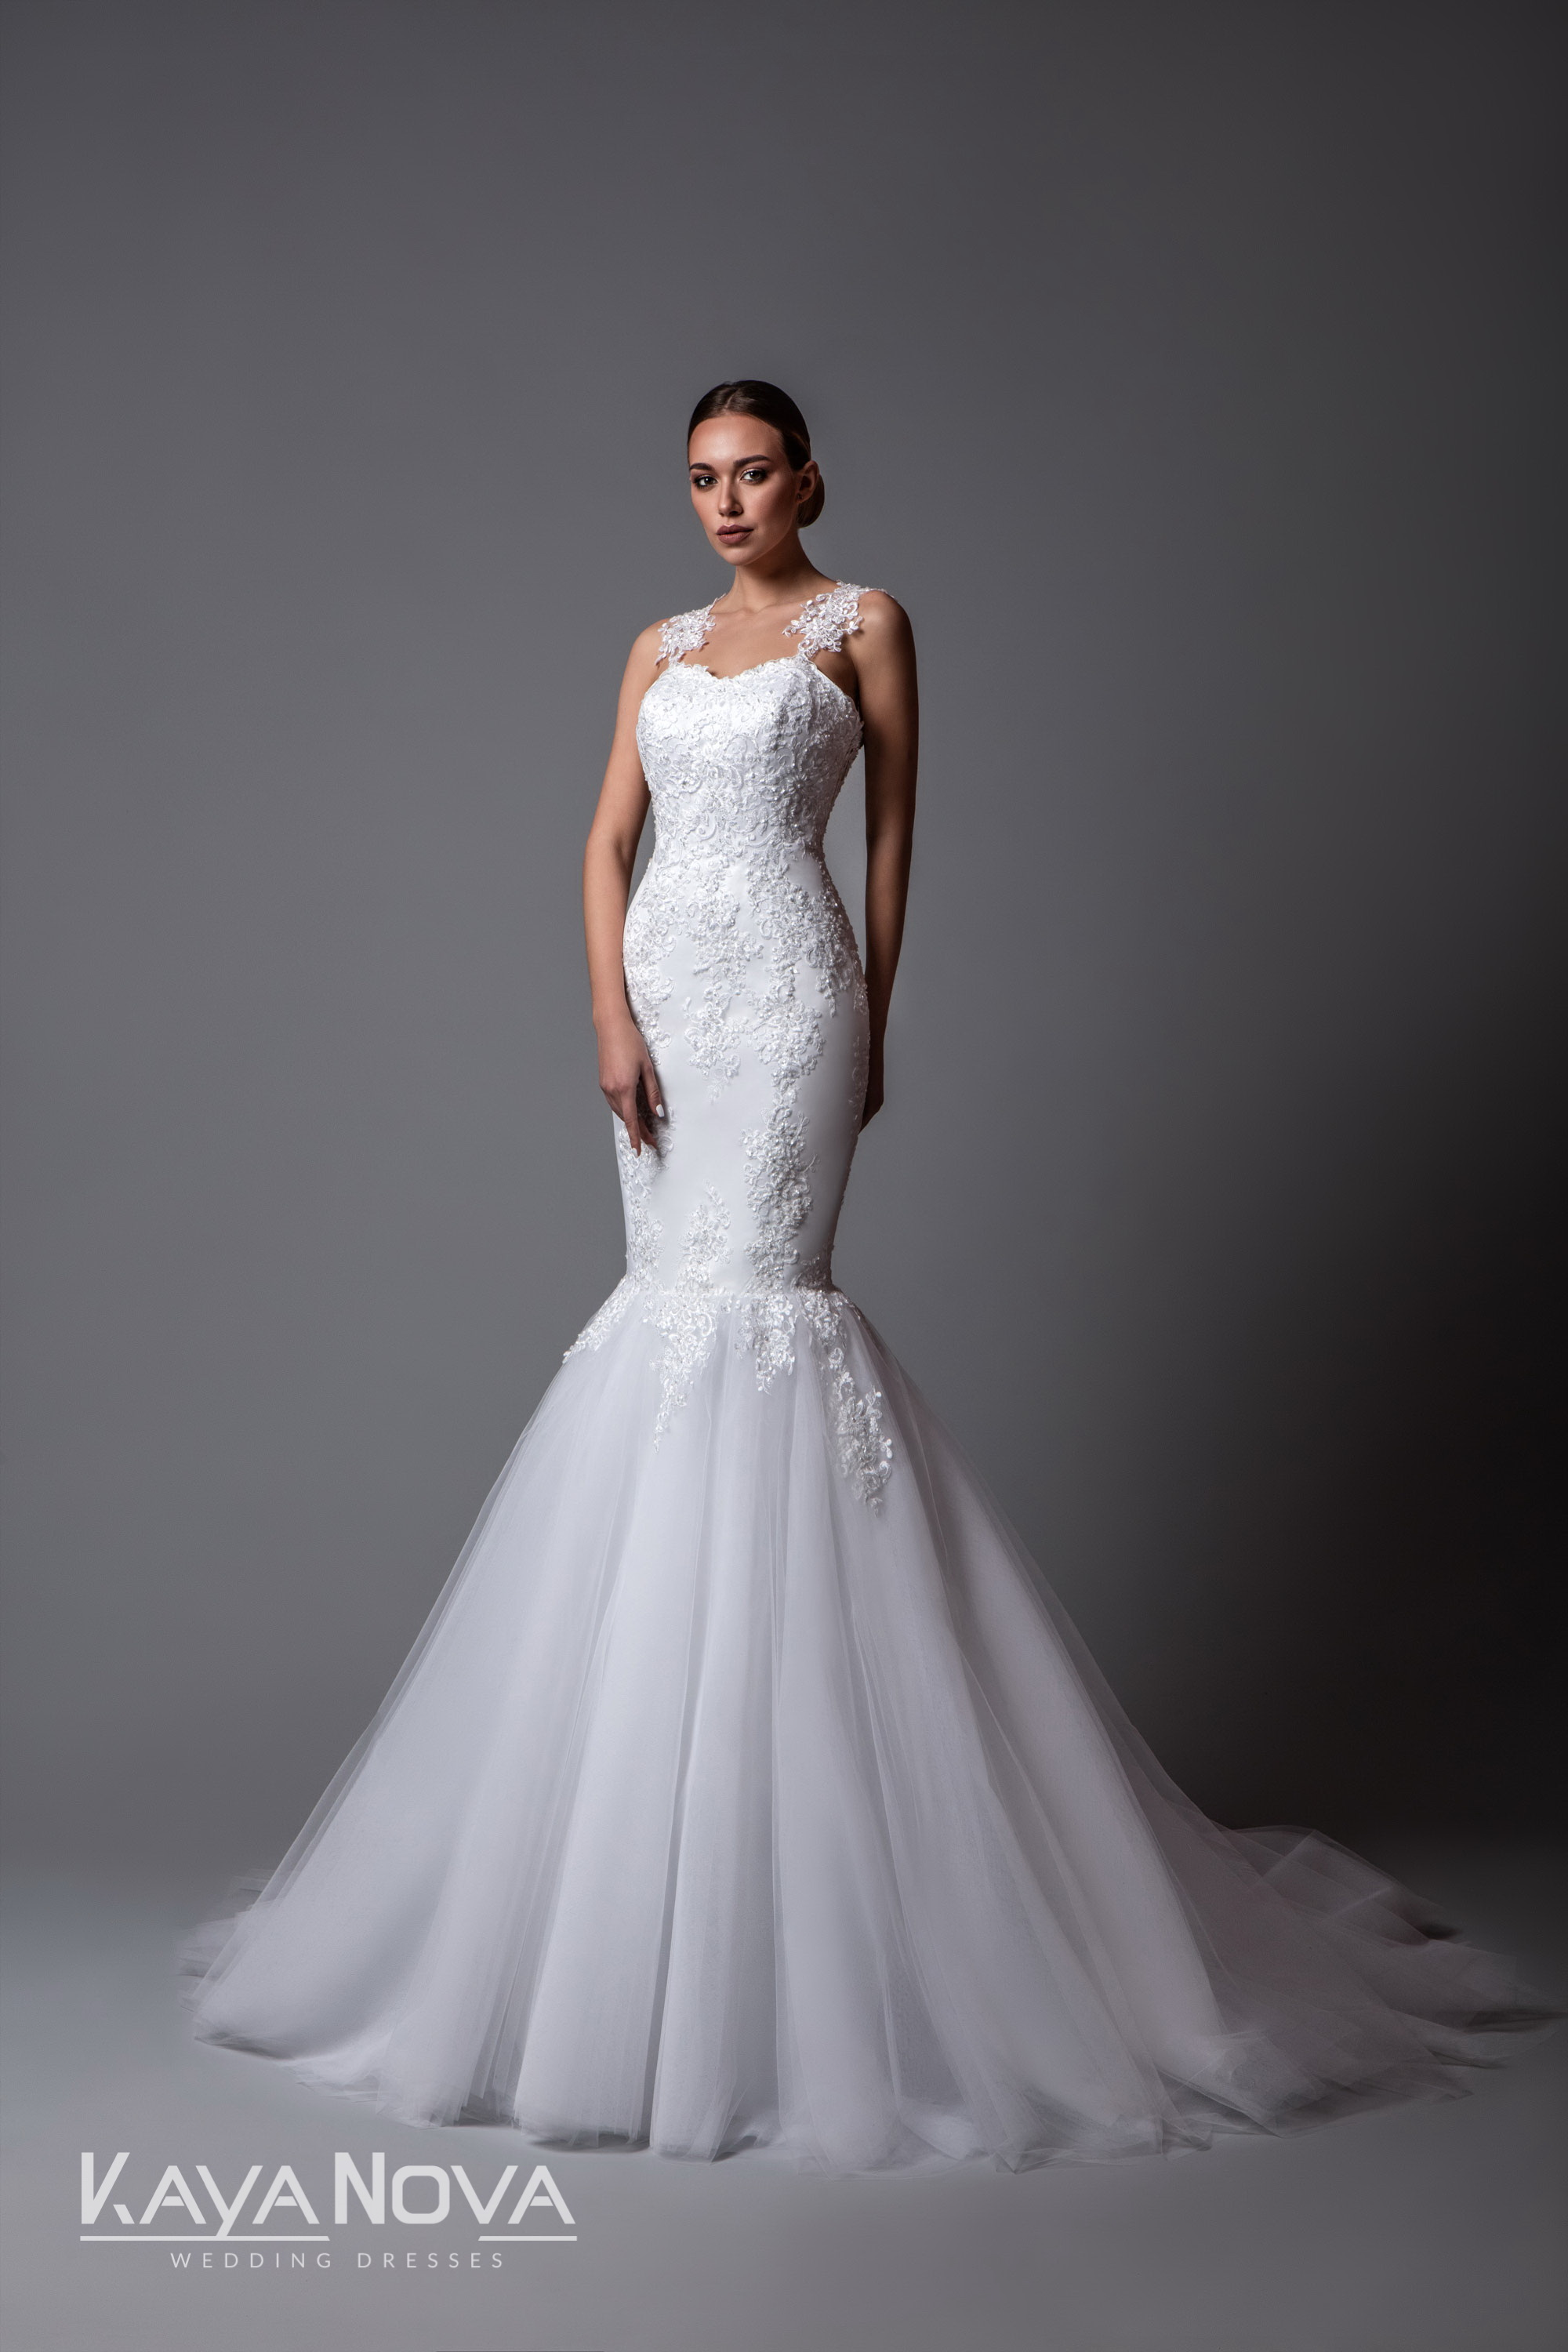 https://kayawedding.com/images/stories/virtuemart/product/Carmina 1.jpg